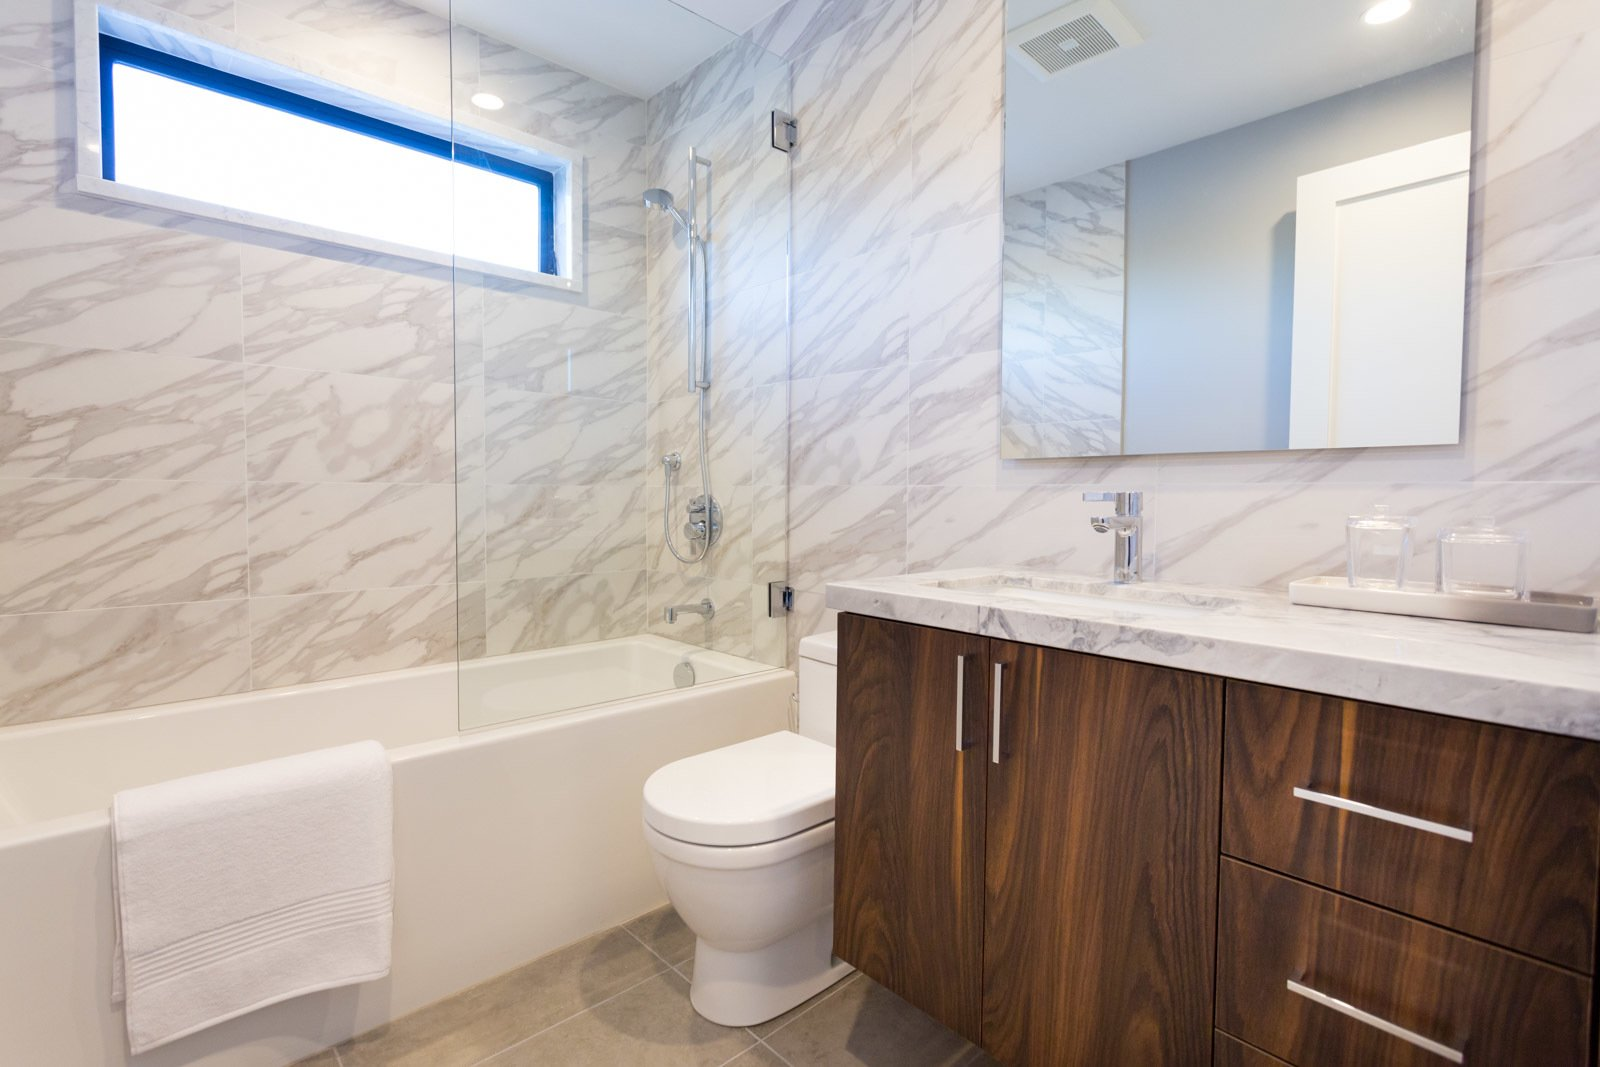 Bath, Granite, Porcelain Tile, Undermount, Drop In, Full, Ceiling, Porcelain Tile, and One Piece Bedroom  #1 Bathroom  Bath Granite Porcelain Tile Photos from The Abernathy